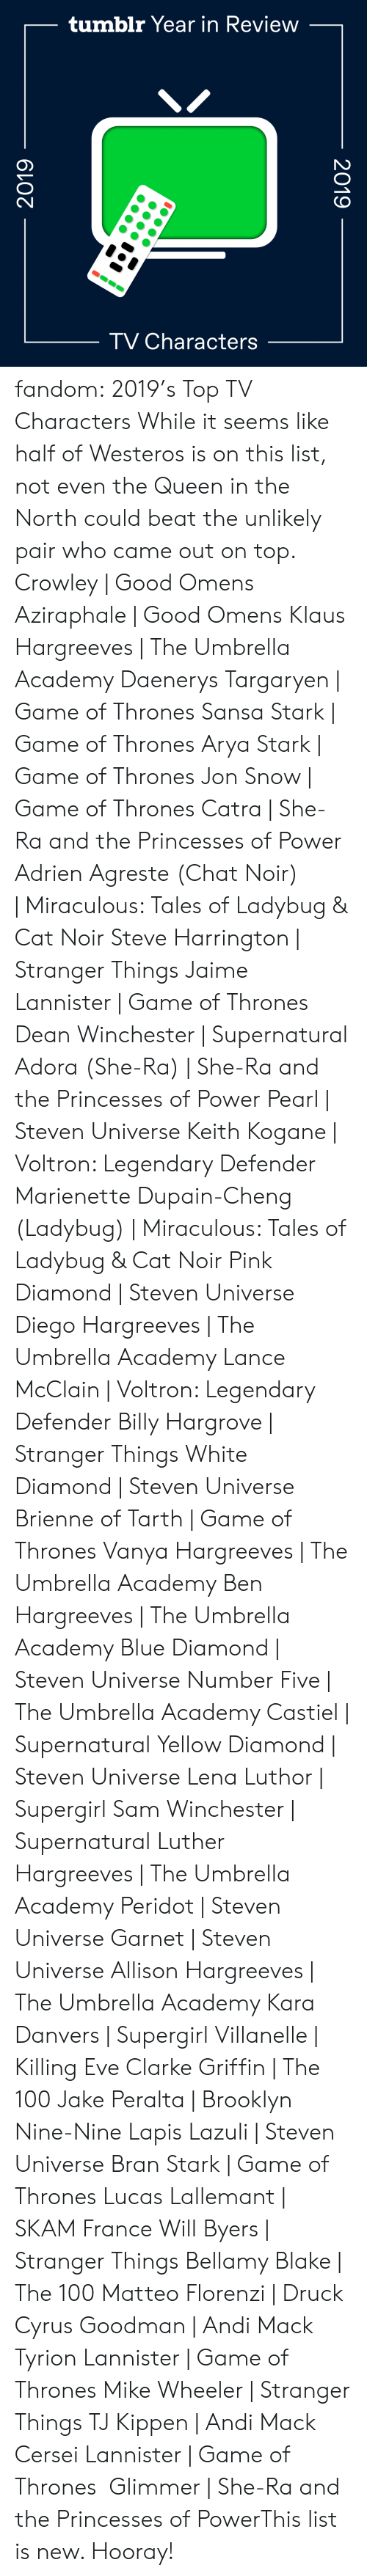 legendary: tumblr Year in Review  TV Characters  2019  2019 fandom:  2019's Top TV Characters  While it seems like half of Westeros is on this list, not even the Queen in the North could beat the unlikely pair who came out on top.  Crowley | Good Omens  Aziraphale | Good Omens  Klaus Hargreeves | The Umbrella Academy  Daenerys Targaryen | Game of Thrones  Sansa Stark | Game of Thrones  Arya Stark | Game of Thrones  Jon Snow | Game of Thrones  Catra | She-Ra and the Princesses of Power  Adrien Agreste (Chat Noir) | Miraculous: Tales of Ladybug & Cat Noir  Steve Harrington | Stranger Things  Jaime Lannister | Game of Thrones  Dean Winchester | Supernatural  Adora (She-Ra) | She-Ra and the Princesses of Power  Pearl | Steven Universe  Keith Kogane | Voltron: Legendary Defender  Marienette Dupain-Cheng (Ladybug) | Miraculous: Tales of Ladybug & Cat Noir  Pink Diamond | Steven Universe  Diego Hargreeves | The Umbrella Academy  Lance McClain | Voltron: Legendary Defender  Billy Hargrove | Stranger Things  White Diamond | Steven Universe  Brienne of Tarth | Game of Thrones  Vanya Hargreeves | The Umbrella Academy  Ben Hargreeves | The Umbrella Academy  Blue Diamond | Steven Universe  Number Five | The Umbrella Academy  Castiel | Supernatural  Yellow Diamond | Steven Universe  Lena Luthor | Supergirl  Sam Winchester | Supernatural  Luther Hargreeves | The Umbrella Academy  Peridot | Steven Universe  Garnet | Steven Universe  Allison Hargreeves | The Umbrella Academy  Kara Danvers | Supergirl  Villanelle | Killing Eve  Clarke Griffin | The 100  Jake Peralta | Brooklyn Nine-Nine  Lapis Lazuli | Steven Universe  Bran Stark | Game of Thrones  Lucas Lallemant | SKAM France  Will Byers | Stranger Things  Bellamy Blake | The 100  Matteo Florenzi | Druck  Cyrus Goodman | Andi Mack  Tyrion Lannister | Game of Thrones  Mike Wheeler | Stranger Things  TJ Kippen | Andi Mack  Cersei Lannister | Game of Thrones  Glimmer | She-Ra and the Princesses of PowerThis list is new. Hooray!